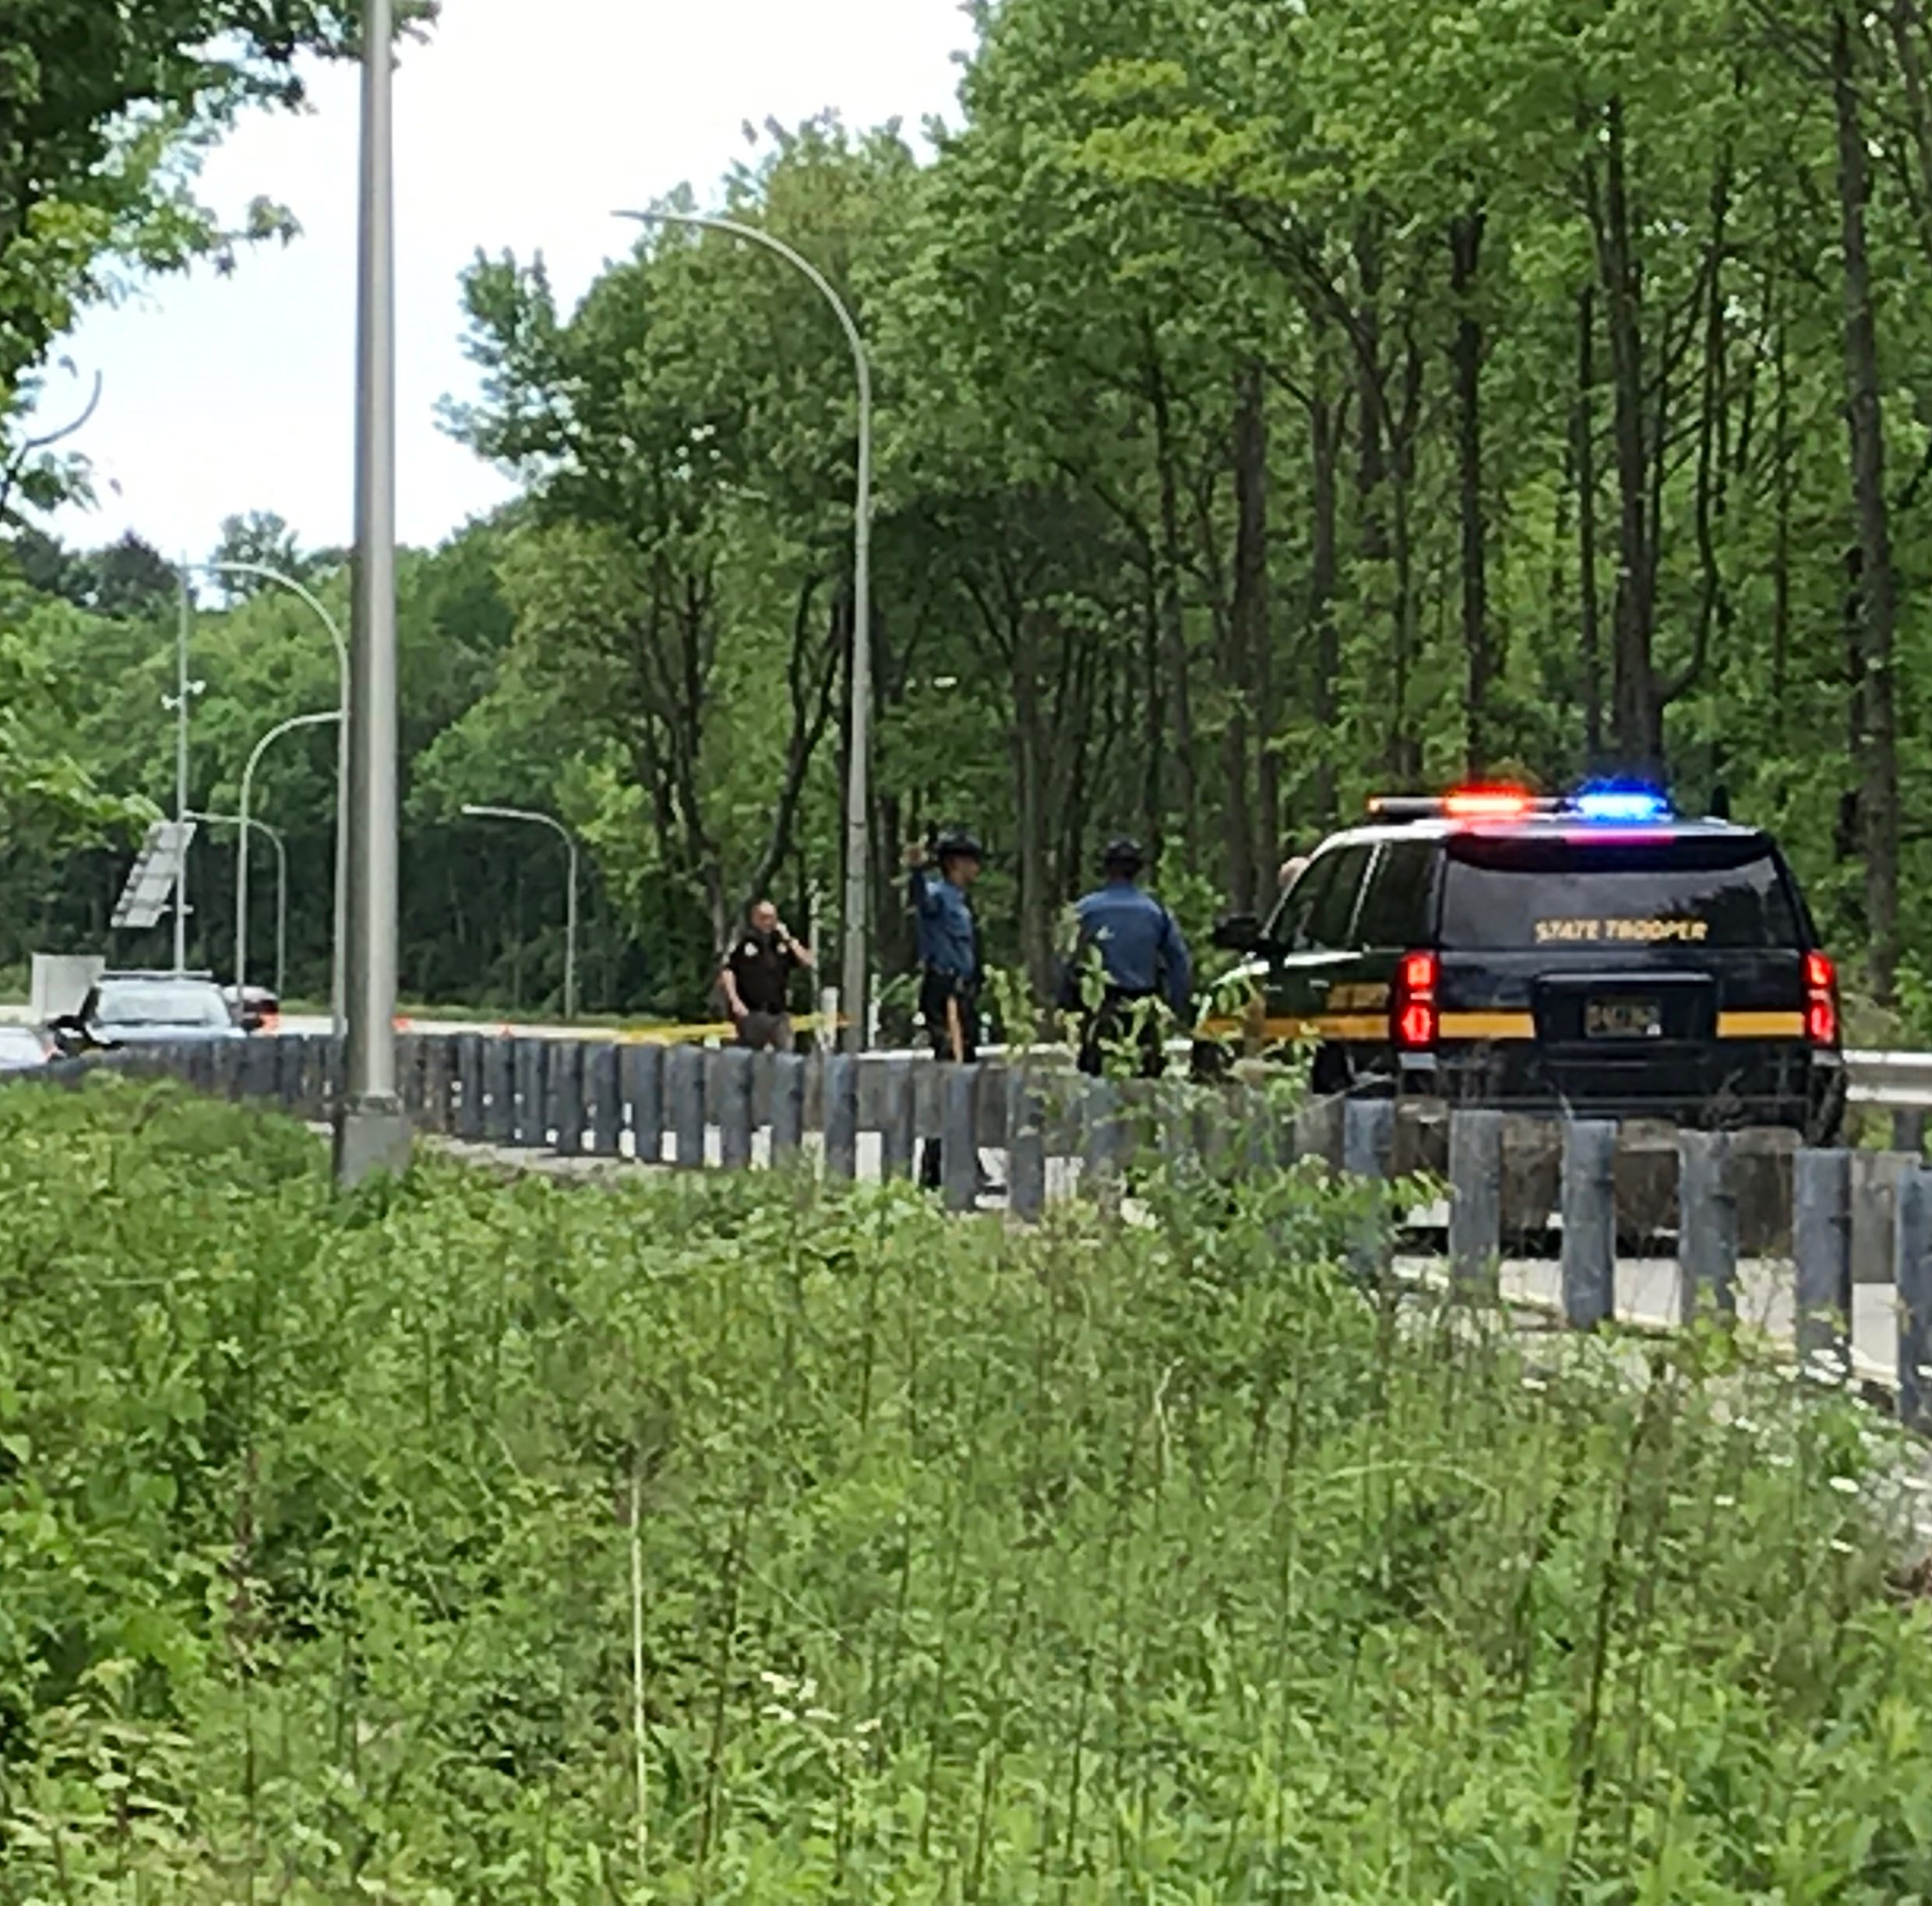 New Castle County Police close down I-95 exit after officer assaulted